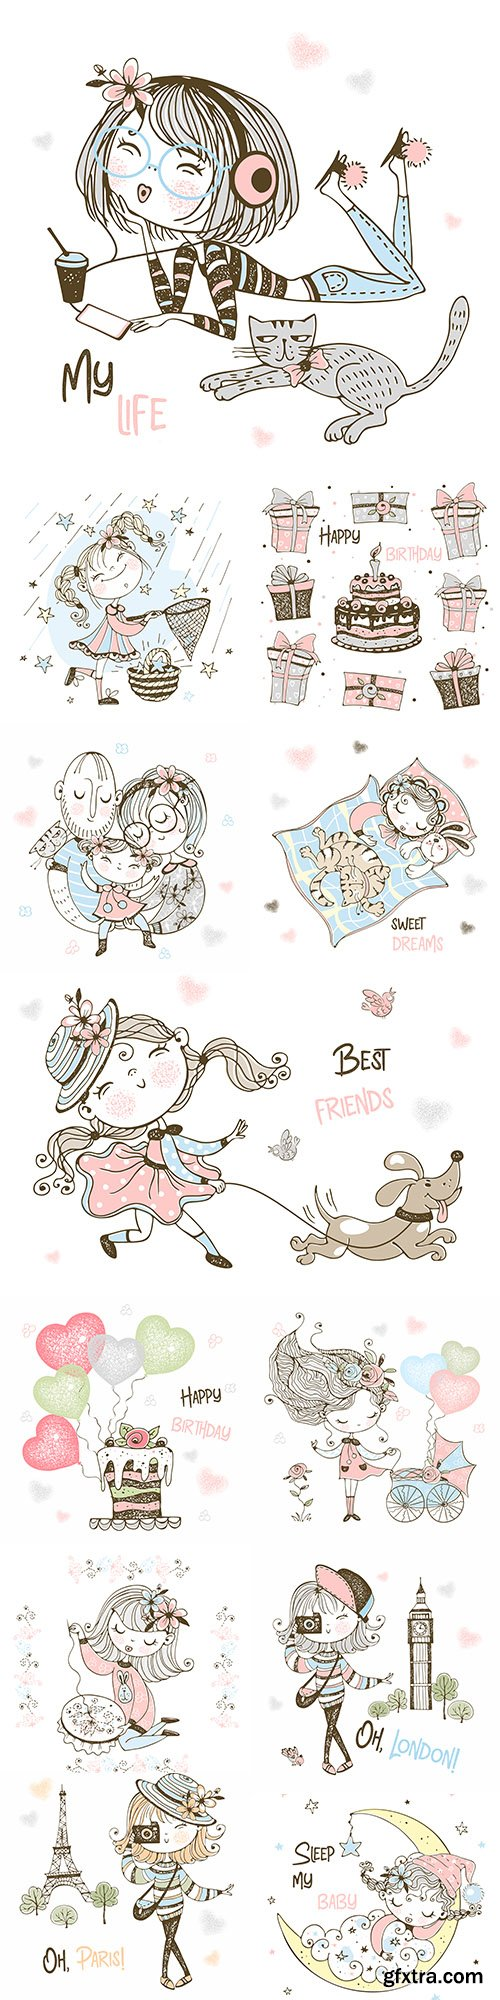 Cute little girl and flowers painted illustrations 4